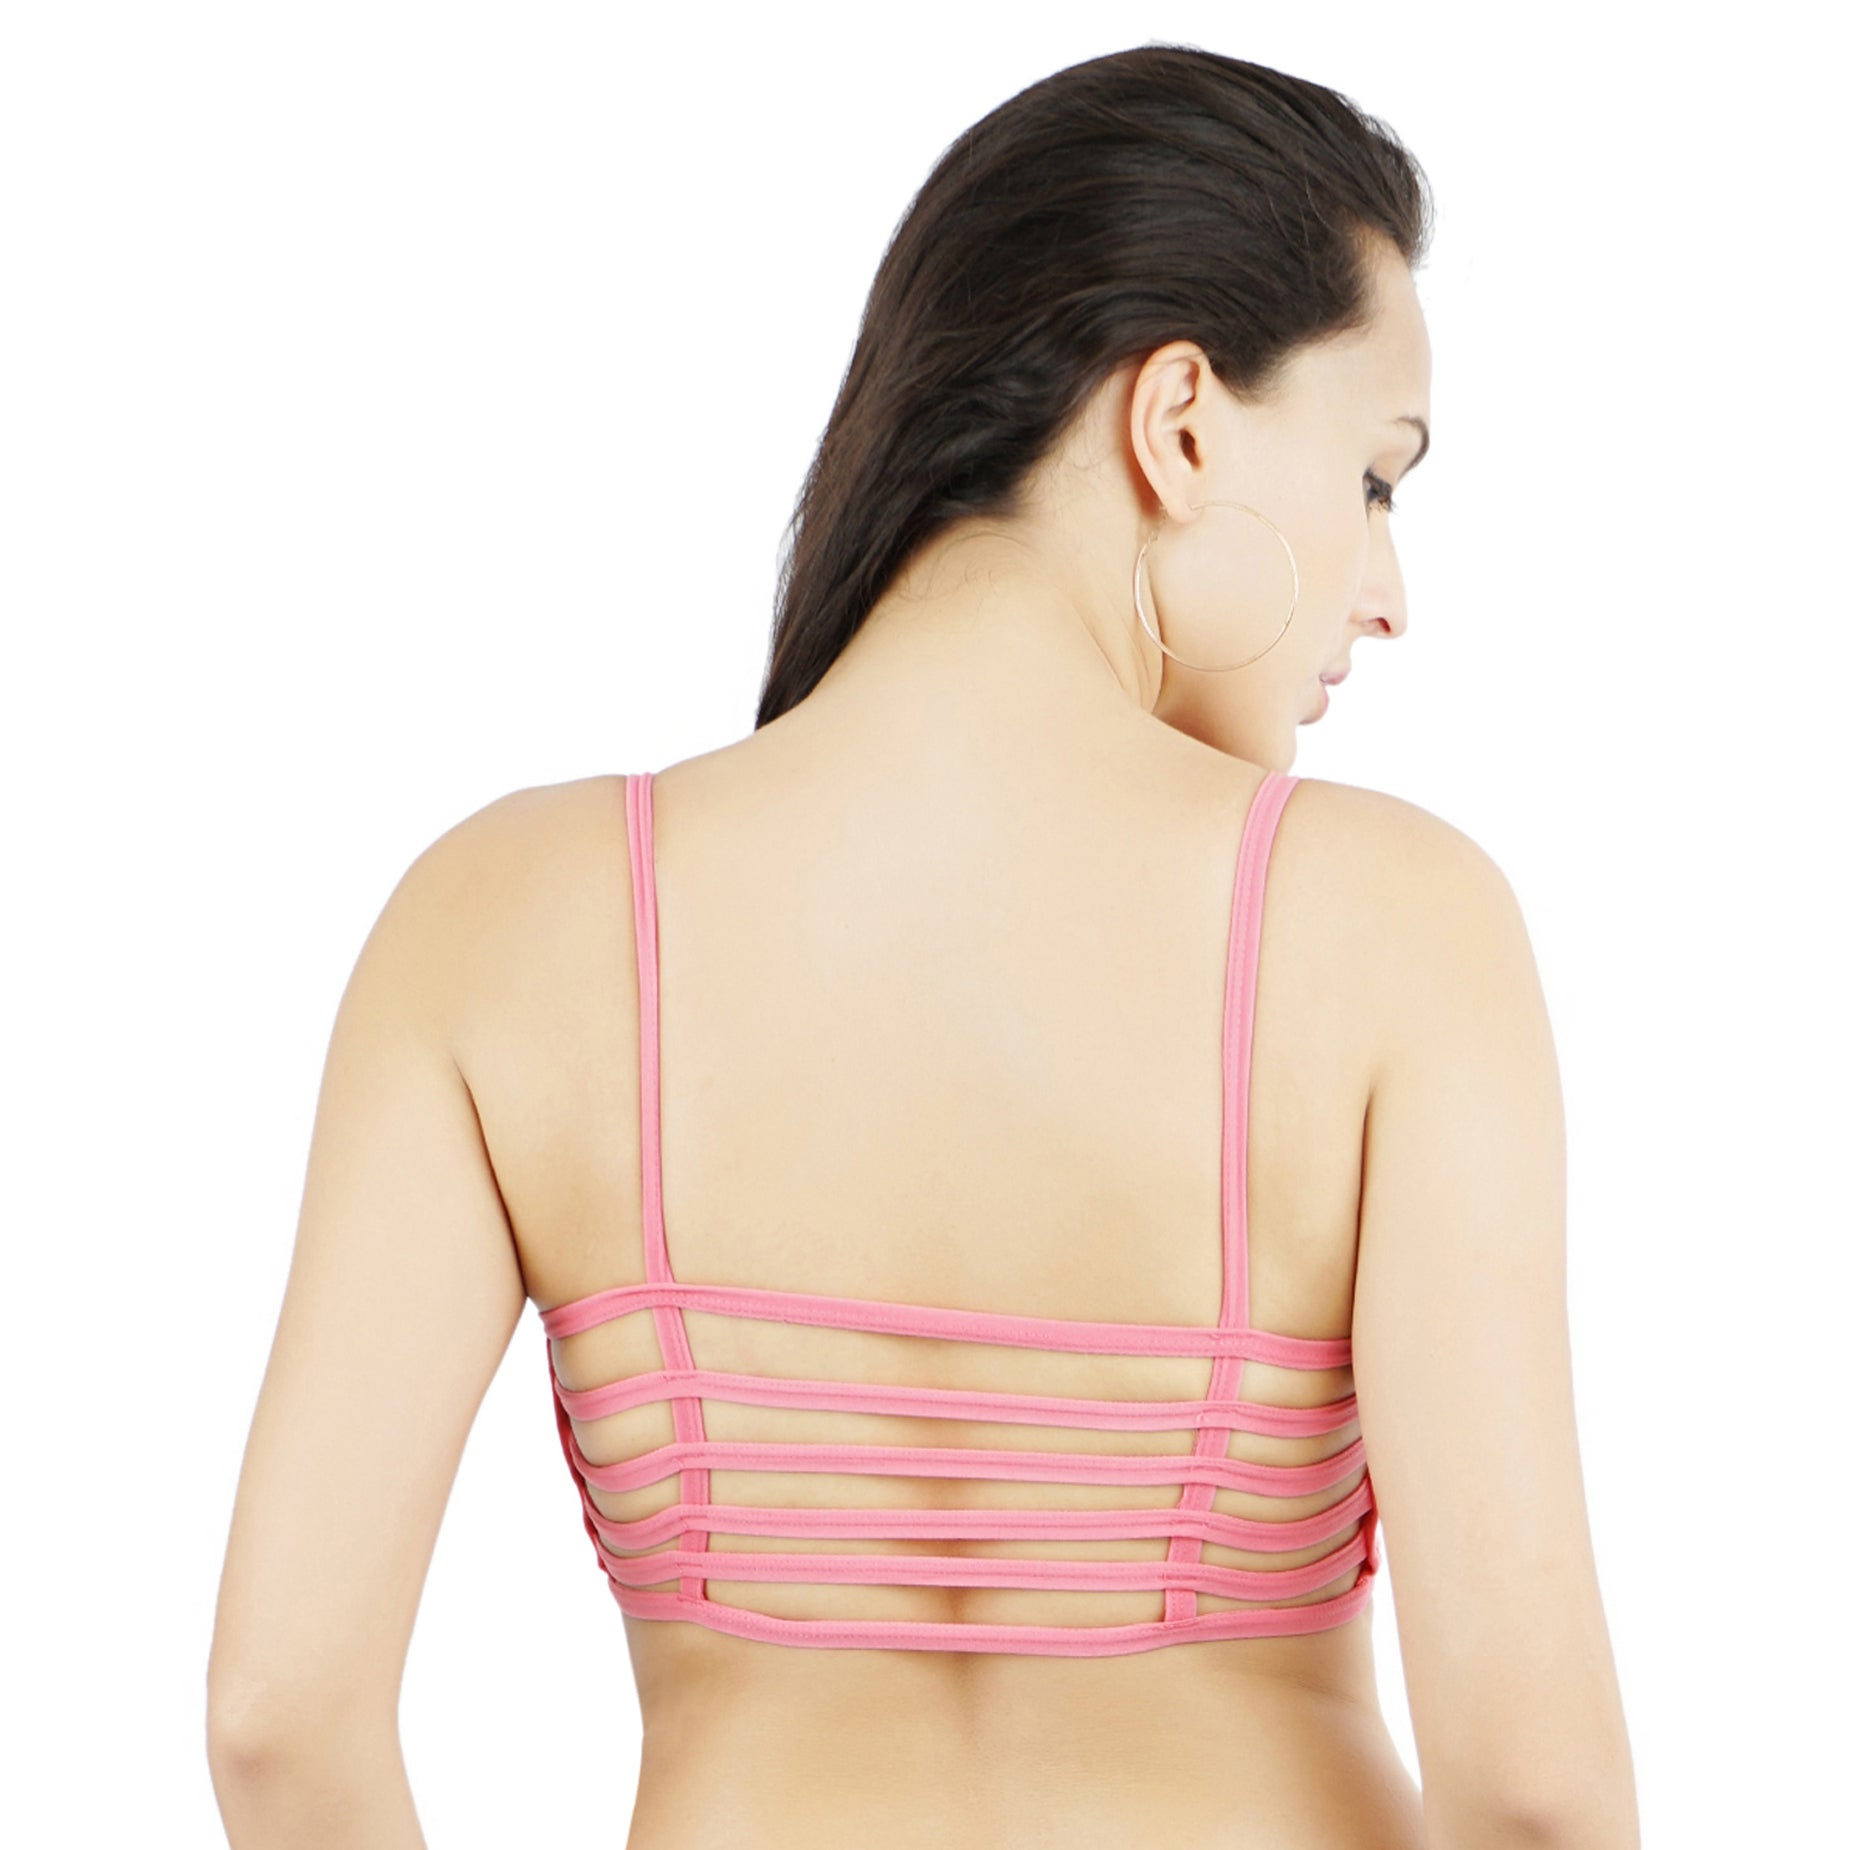 Ficuster Stretchable Removable Pad Pink Sports Bra